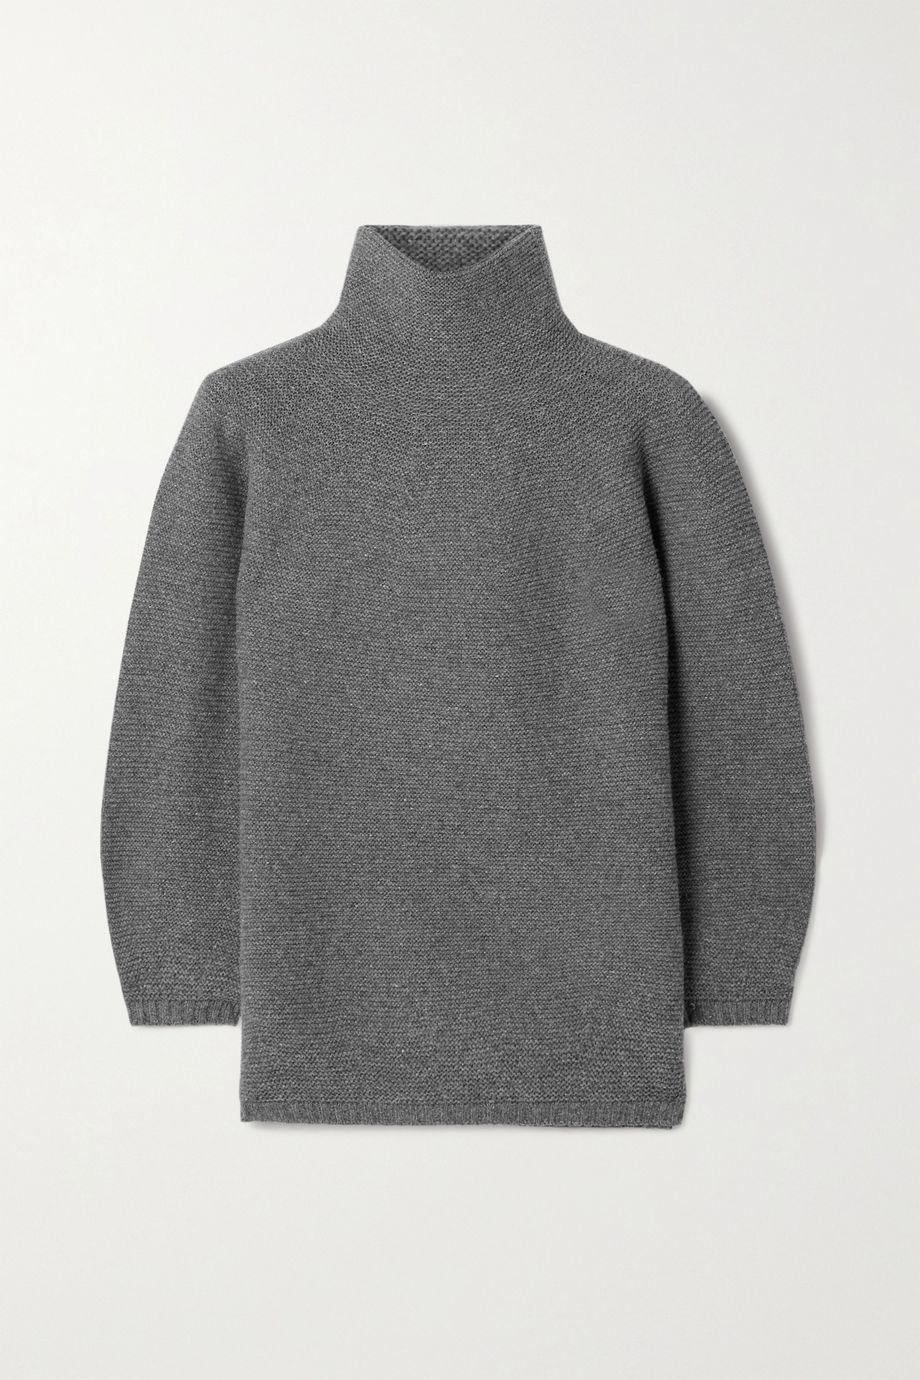 Max Mara Etrusco wool and cashmere-blend turtleneck sweater